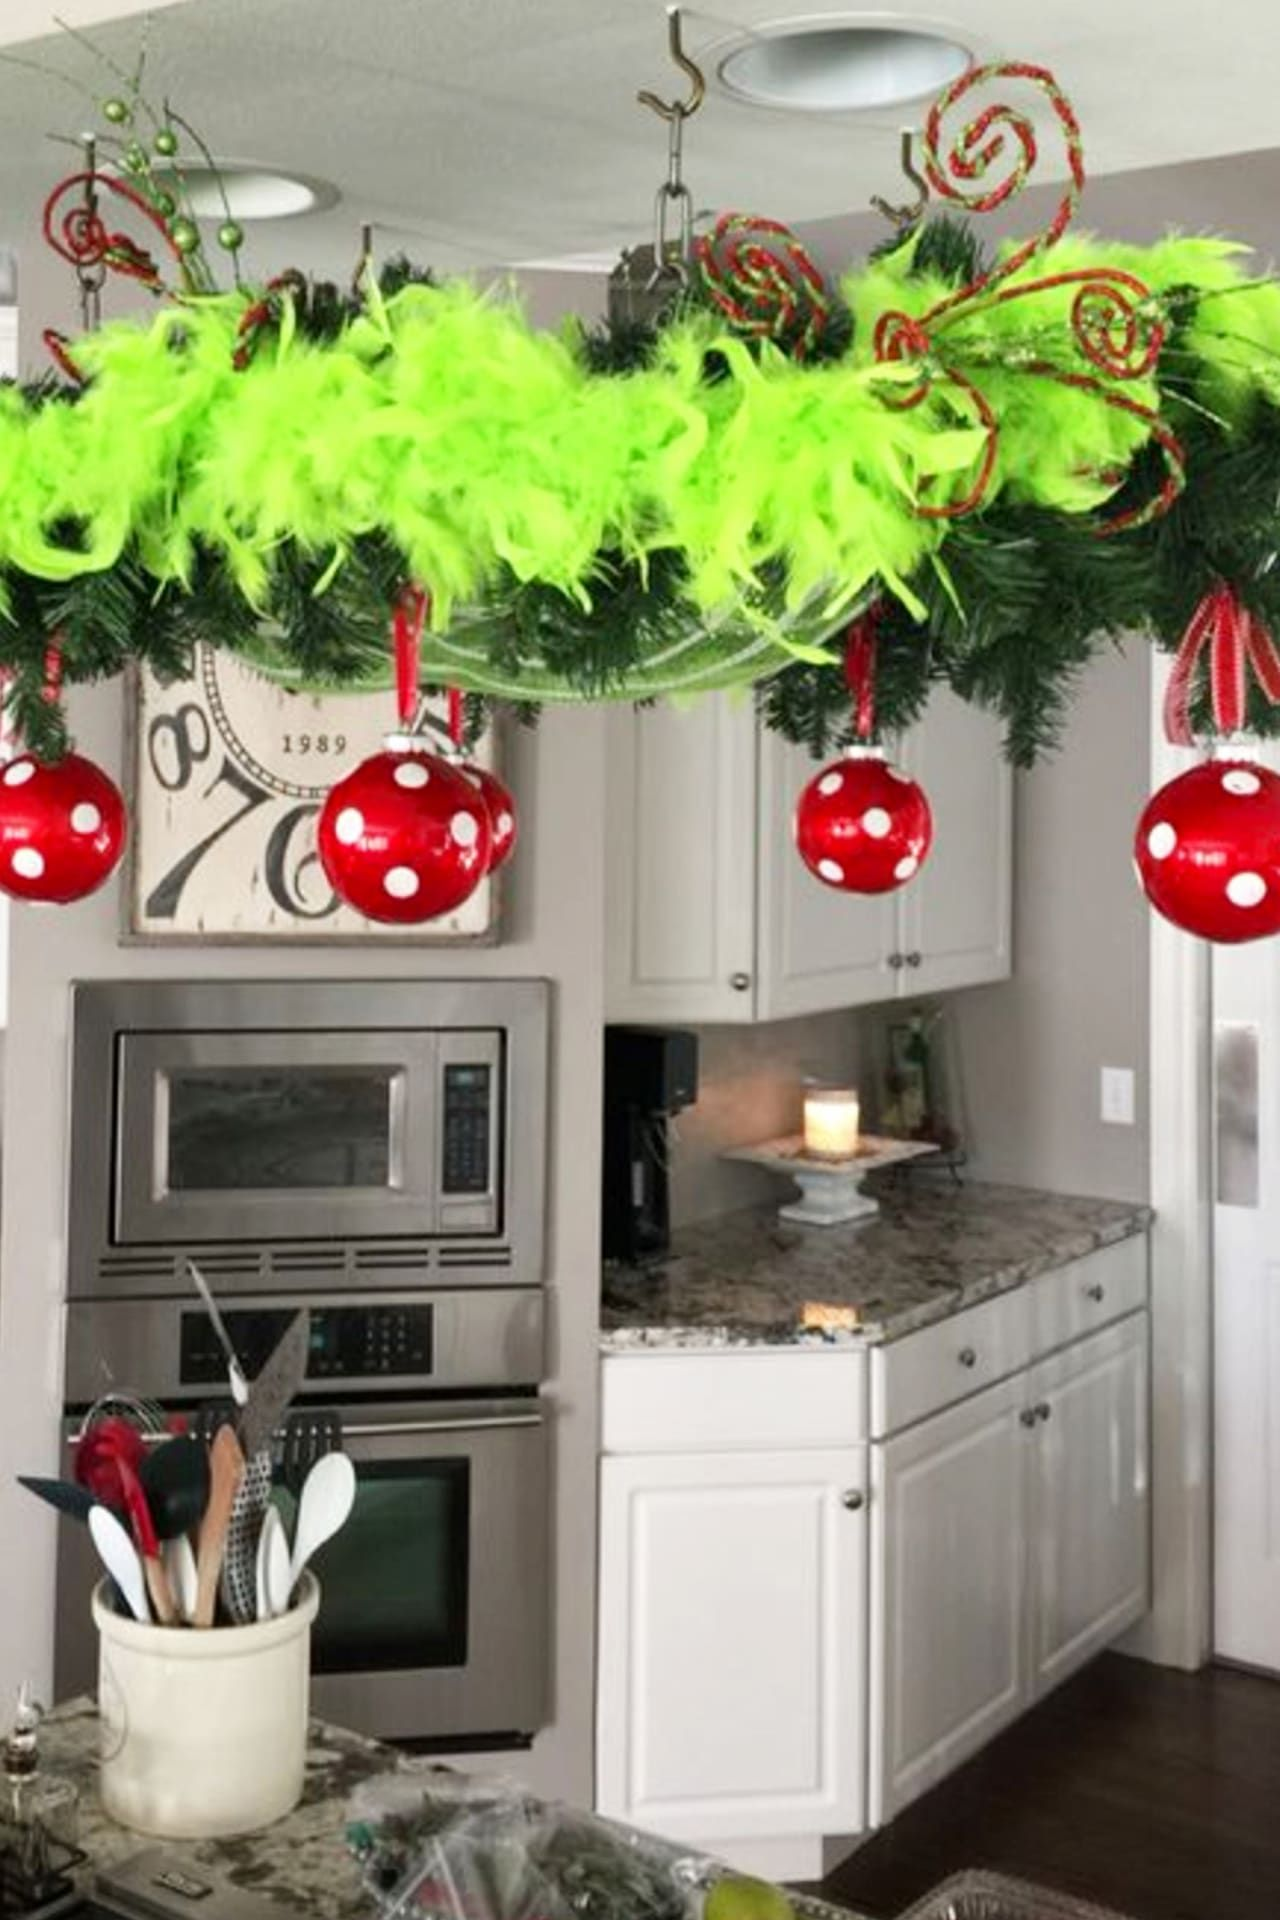 Easy DIY Grinch Decorations, Ornaments & Crafts for